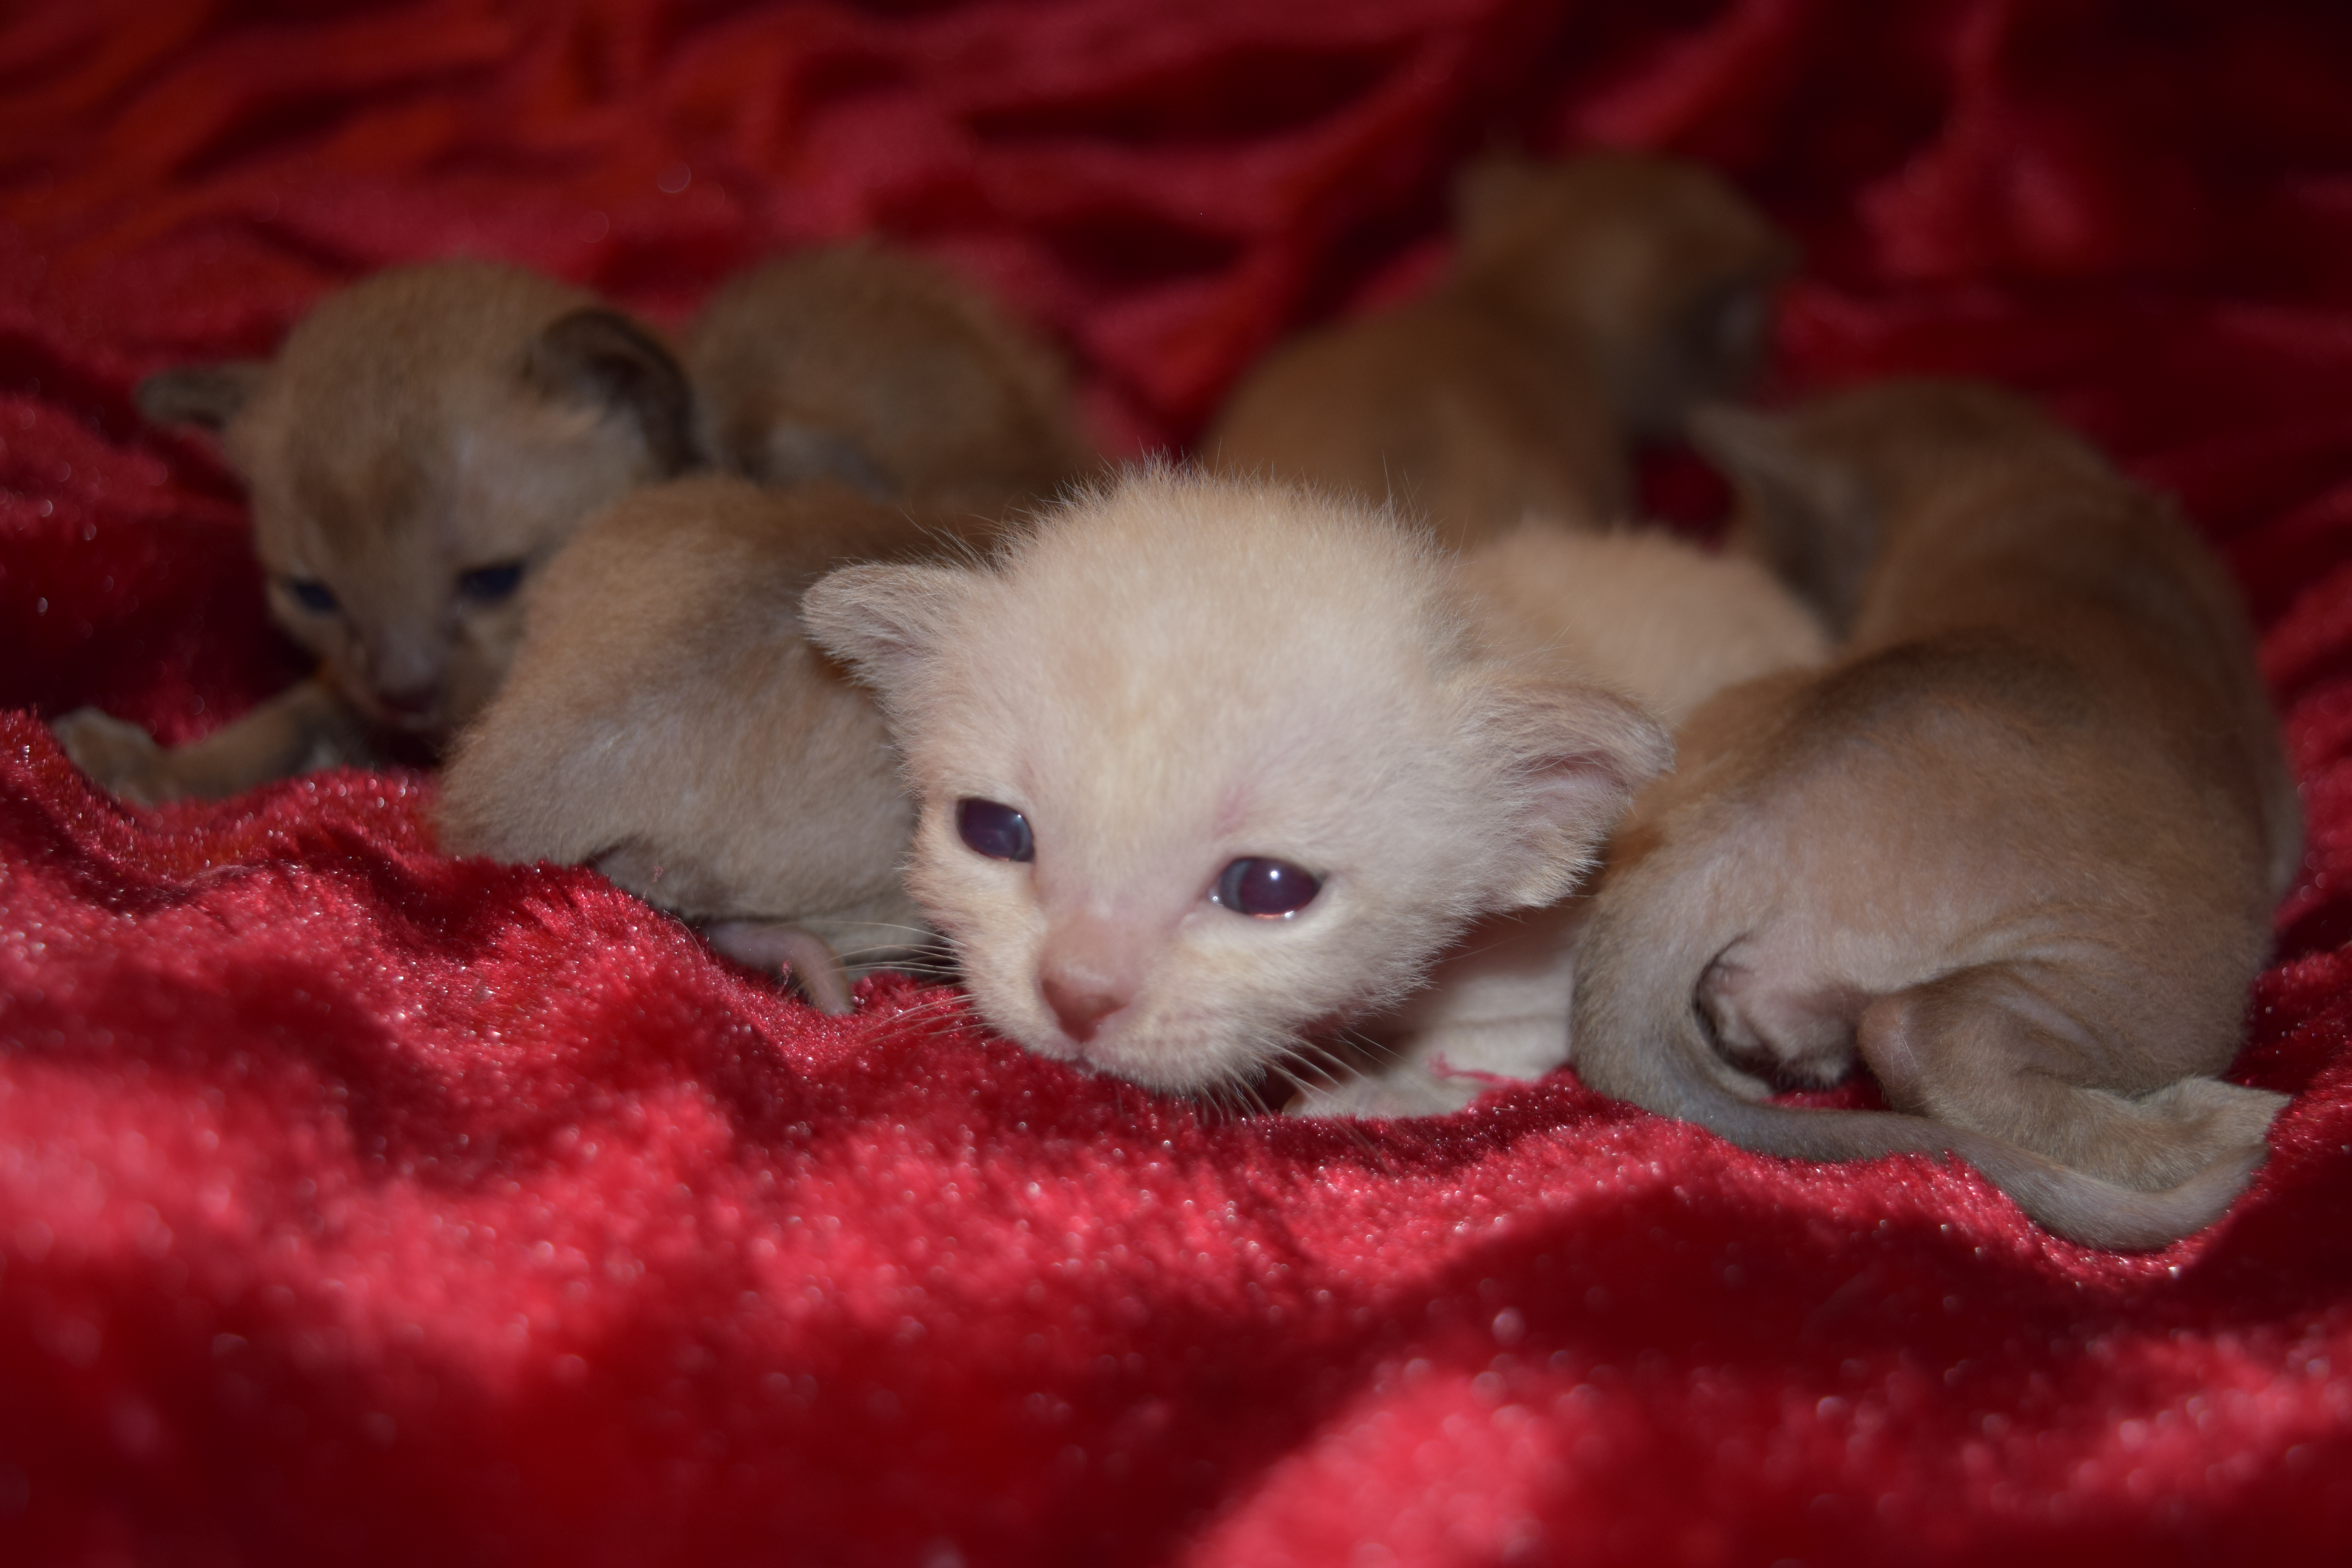 Tink's Kittens